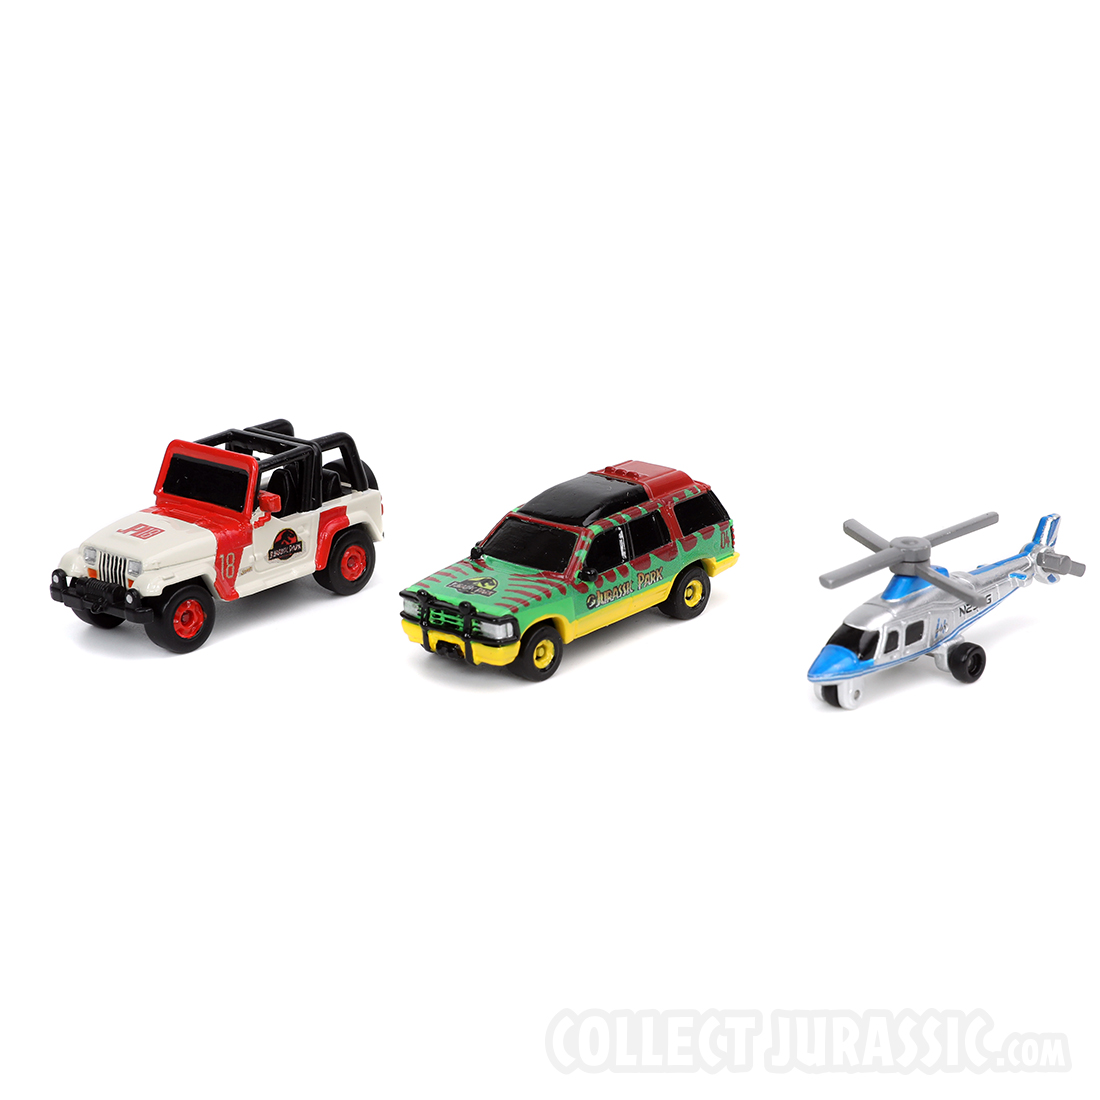 Nano Jurassic Park Vehicles On The Way From Jada Toys - Collect Jurassic